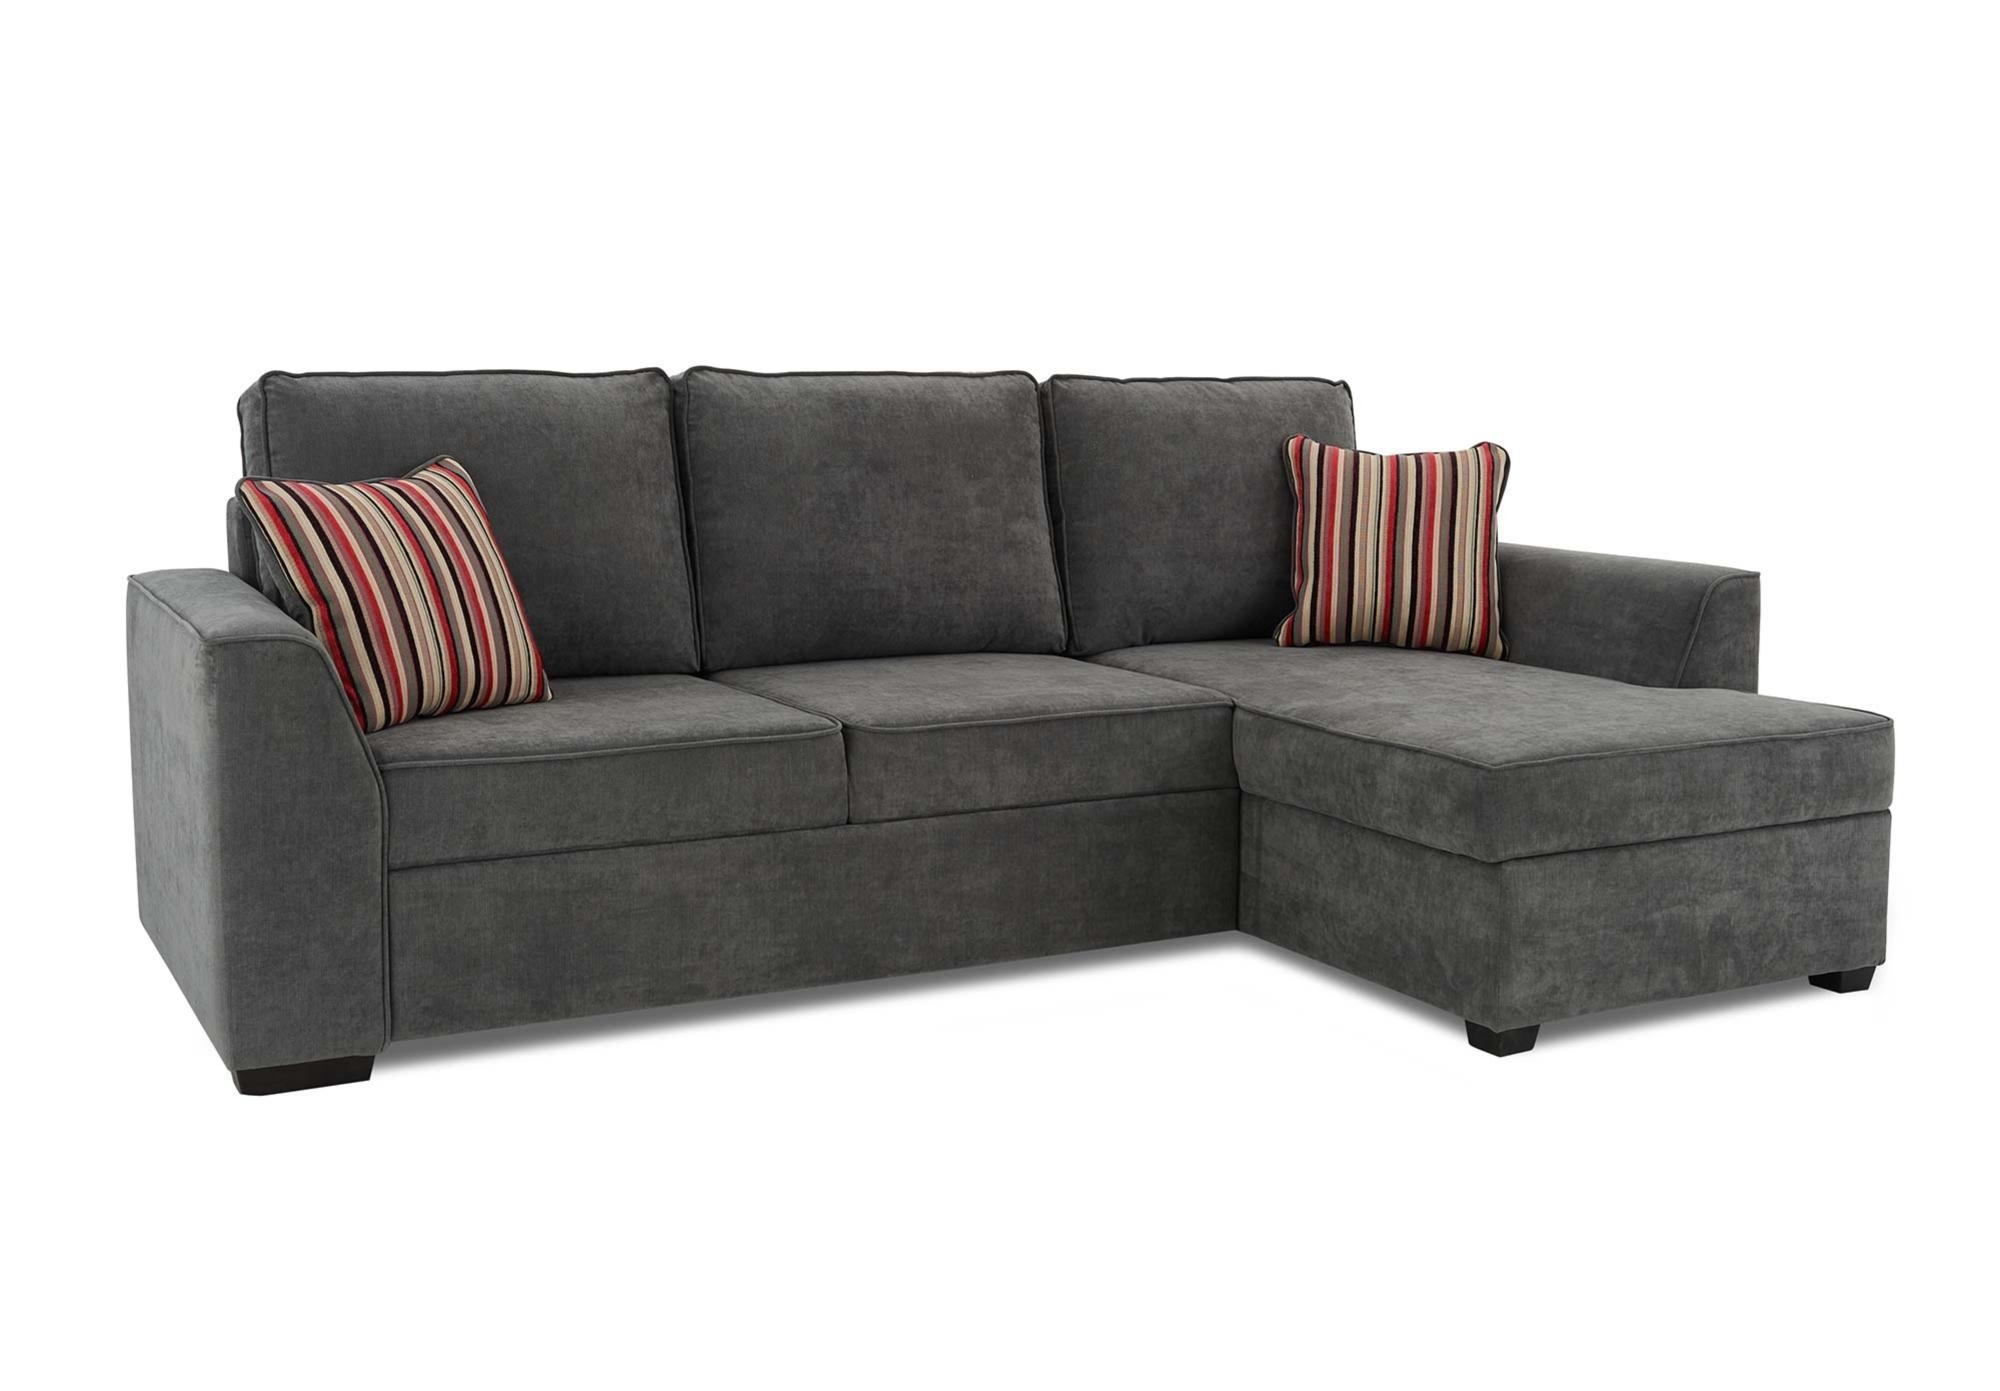 Nice Sofa Bed With Storage Chaise 405890 Sofa | Ciov Inside Sofa Beds With Storage Chaise (Image 8 of 20)